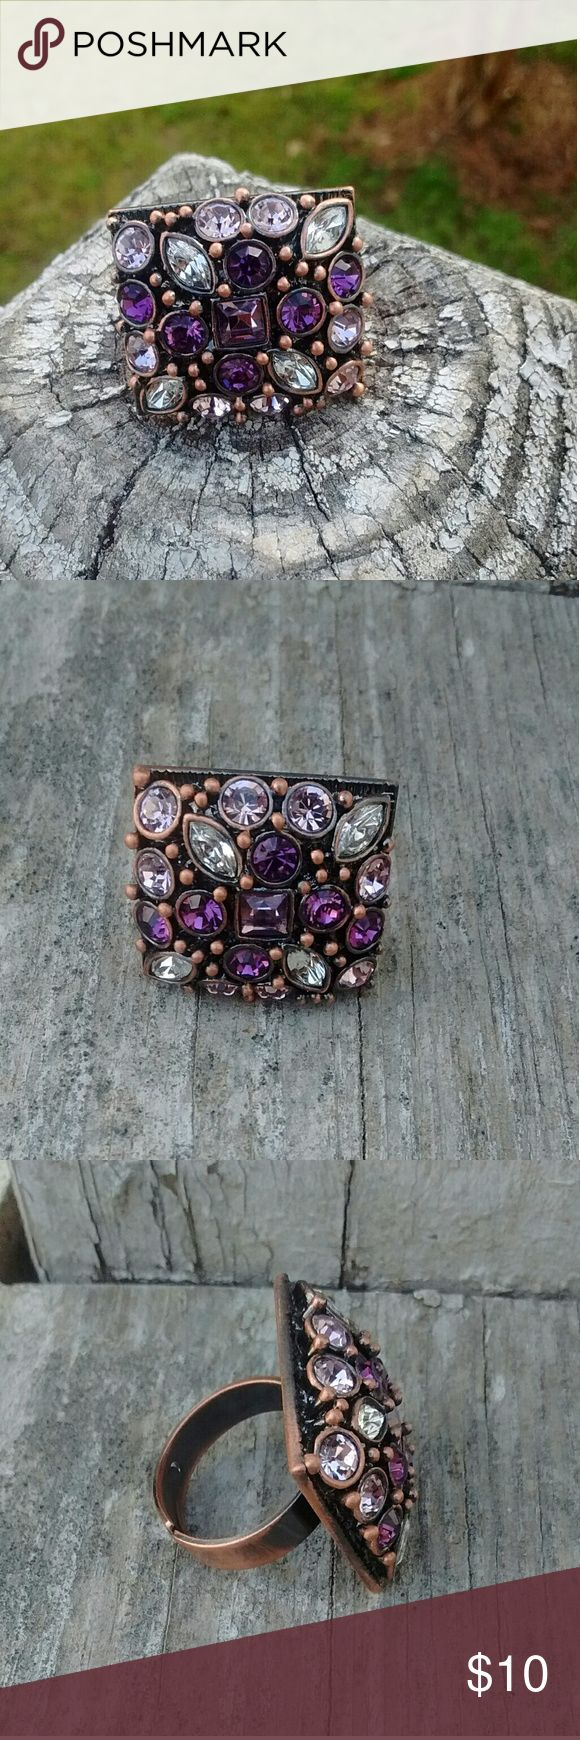 Square Face Crystal Costume Jewelry Ring *Metal  *Good condition Jewelry Rings